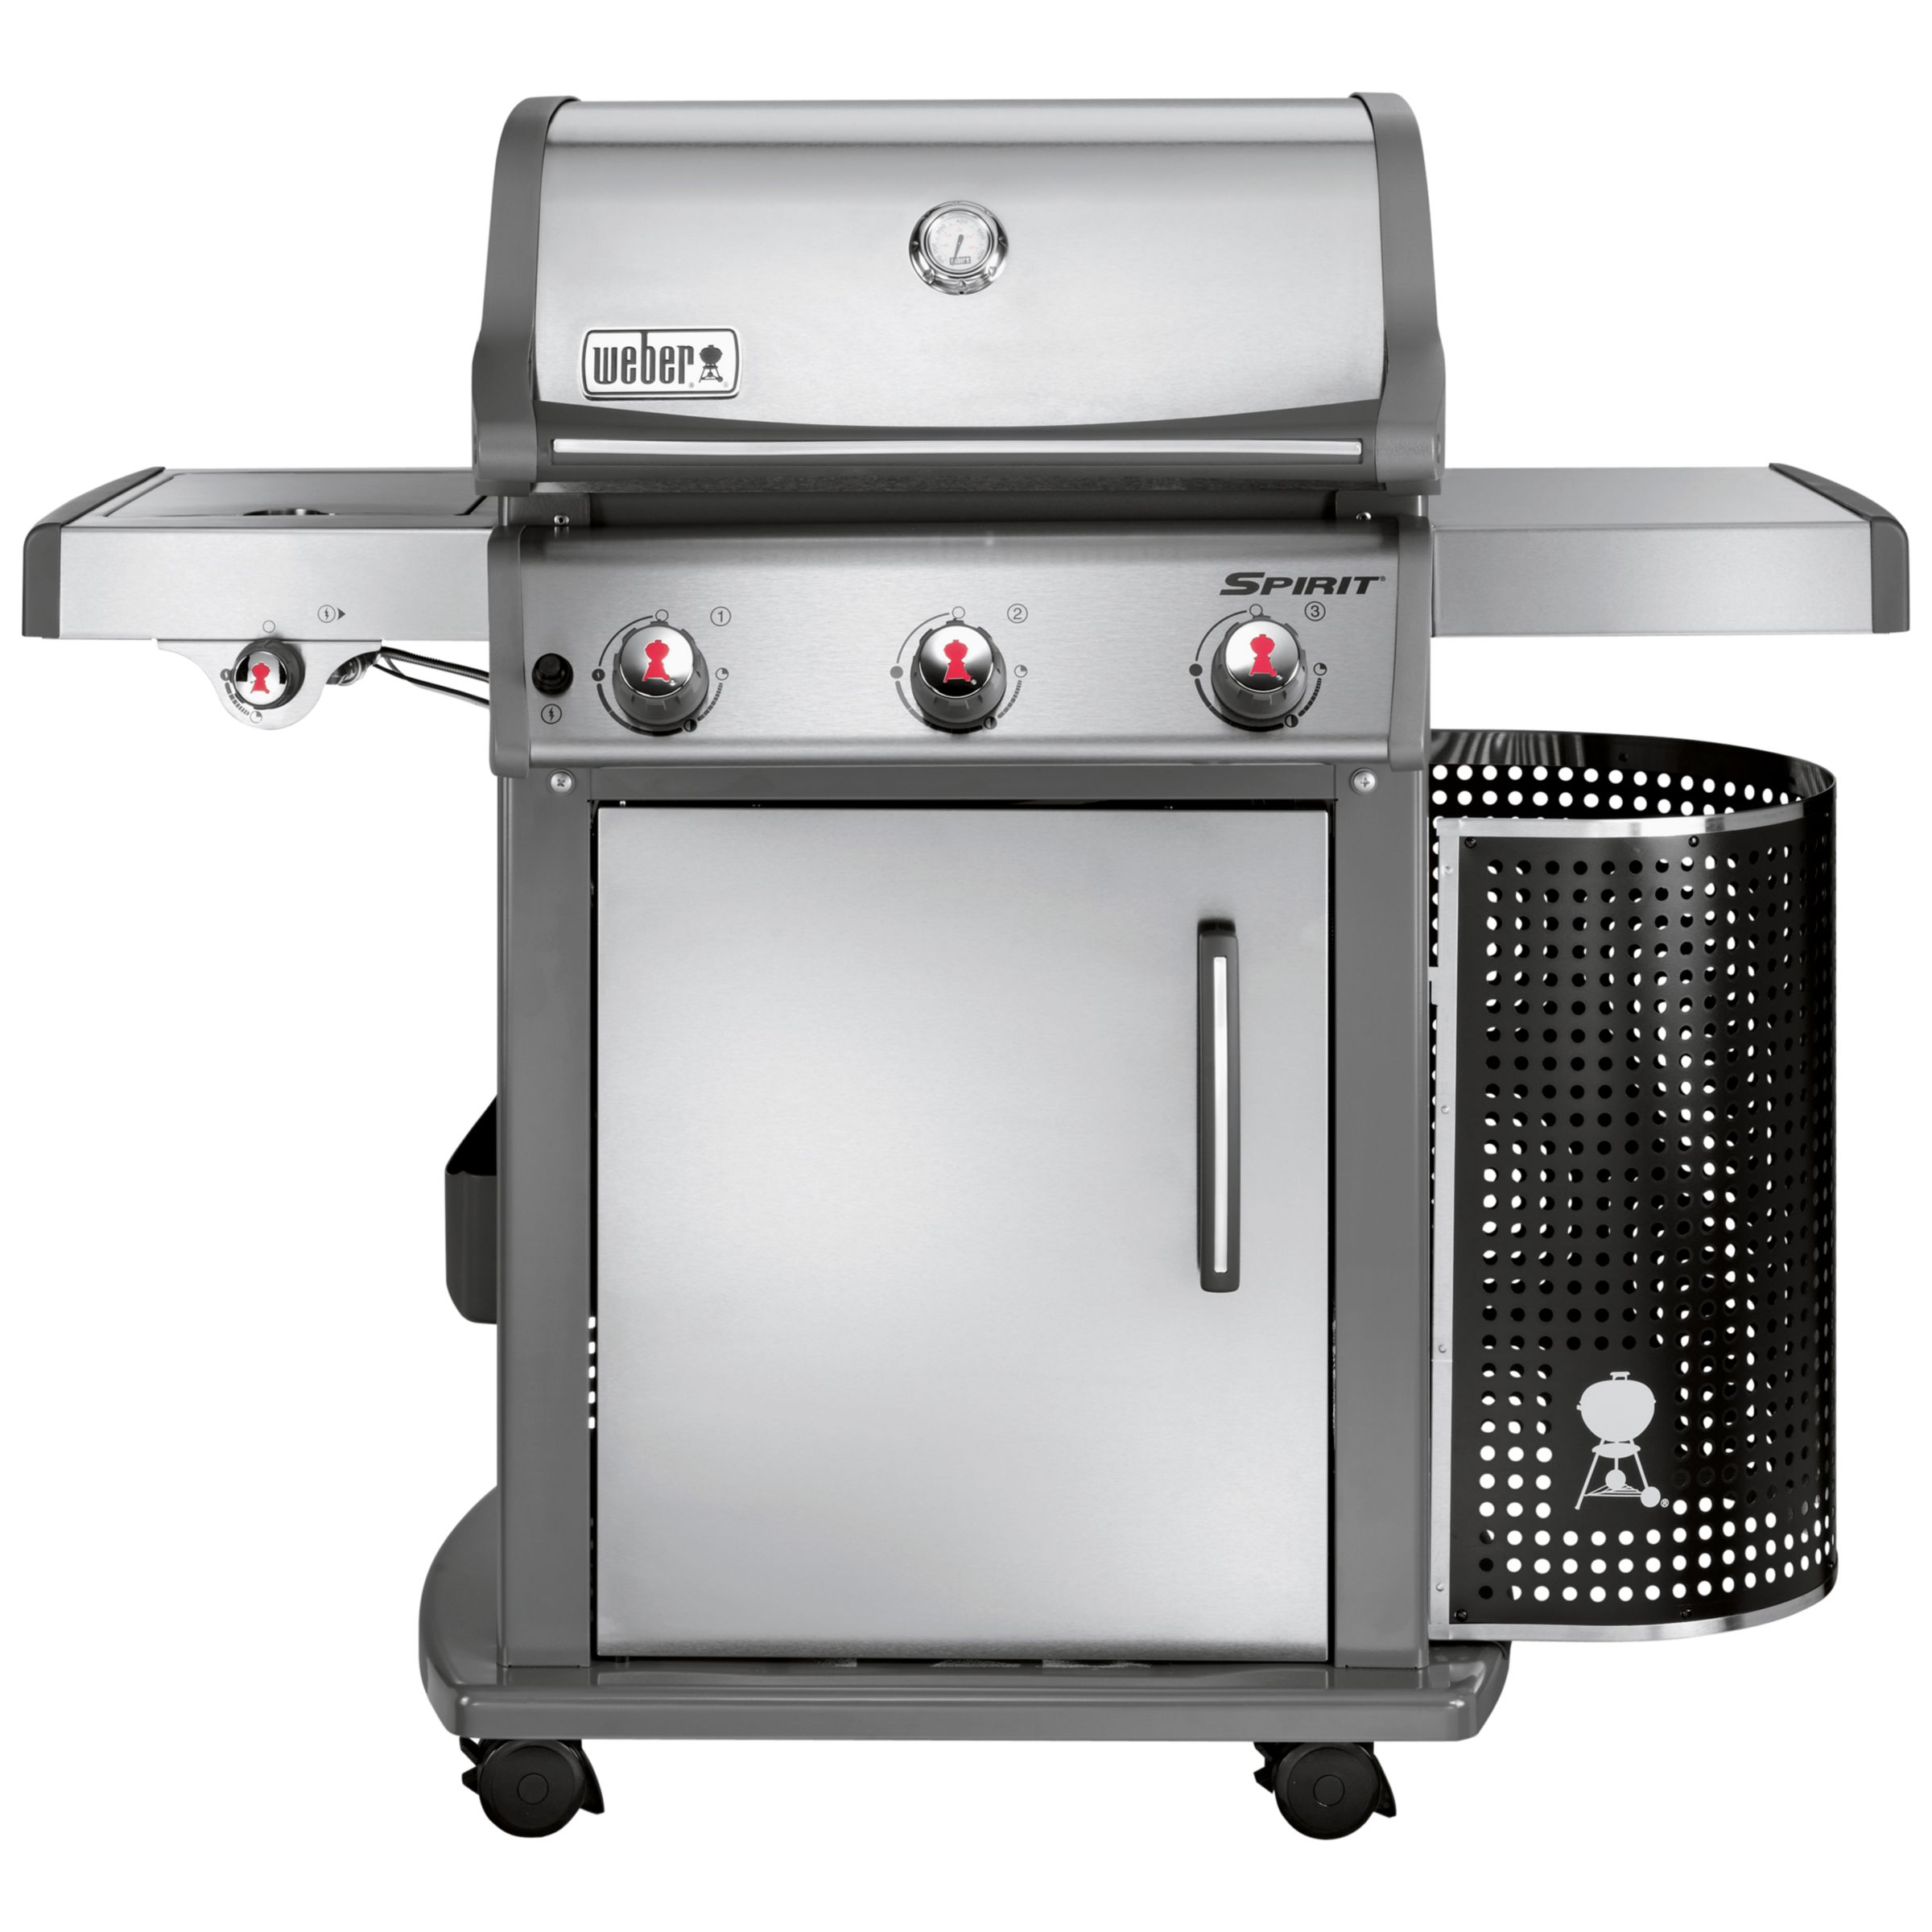 weber spirit e330 gas grill weber spirit barbeque 100. Black Bedroom Furniture Sets. Home Design Ideas